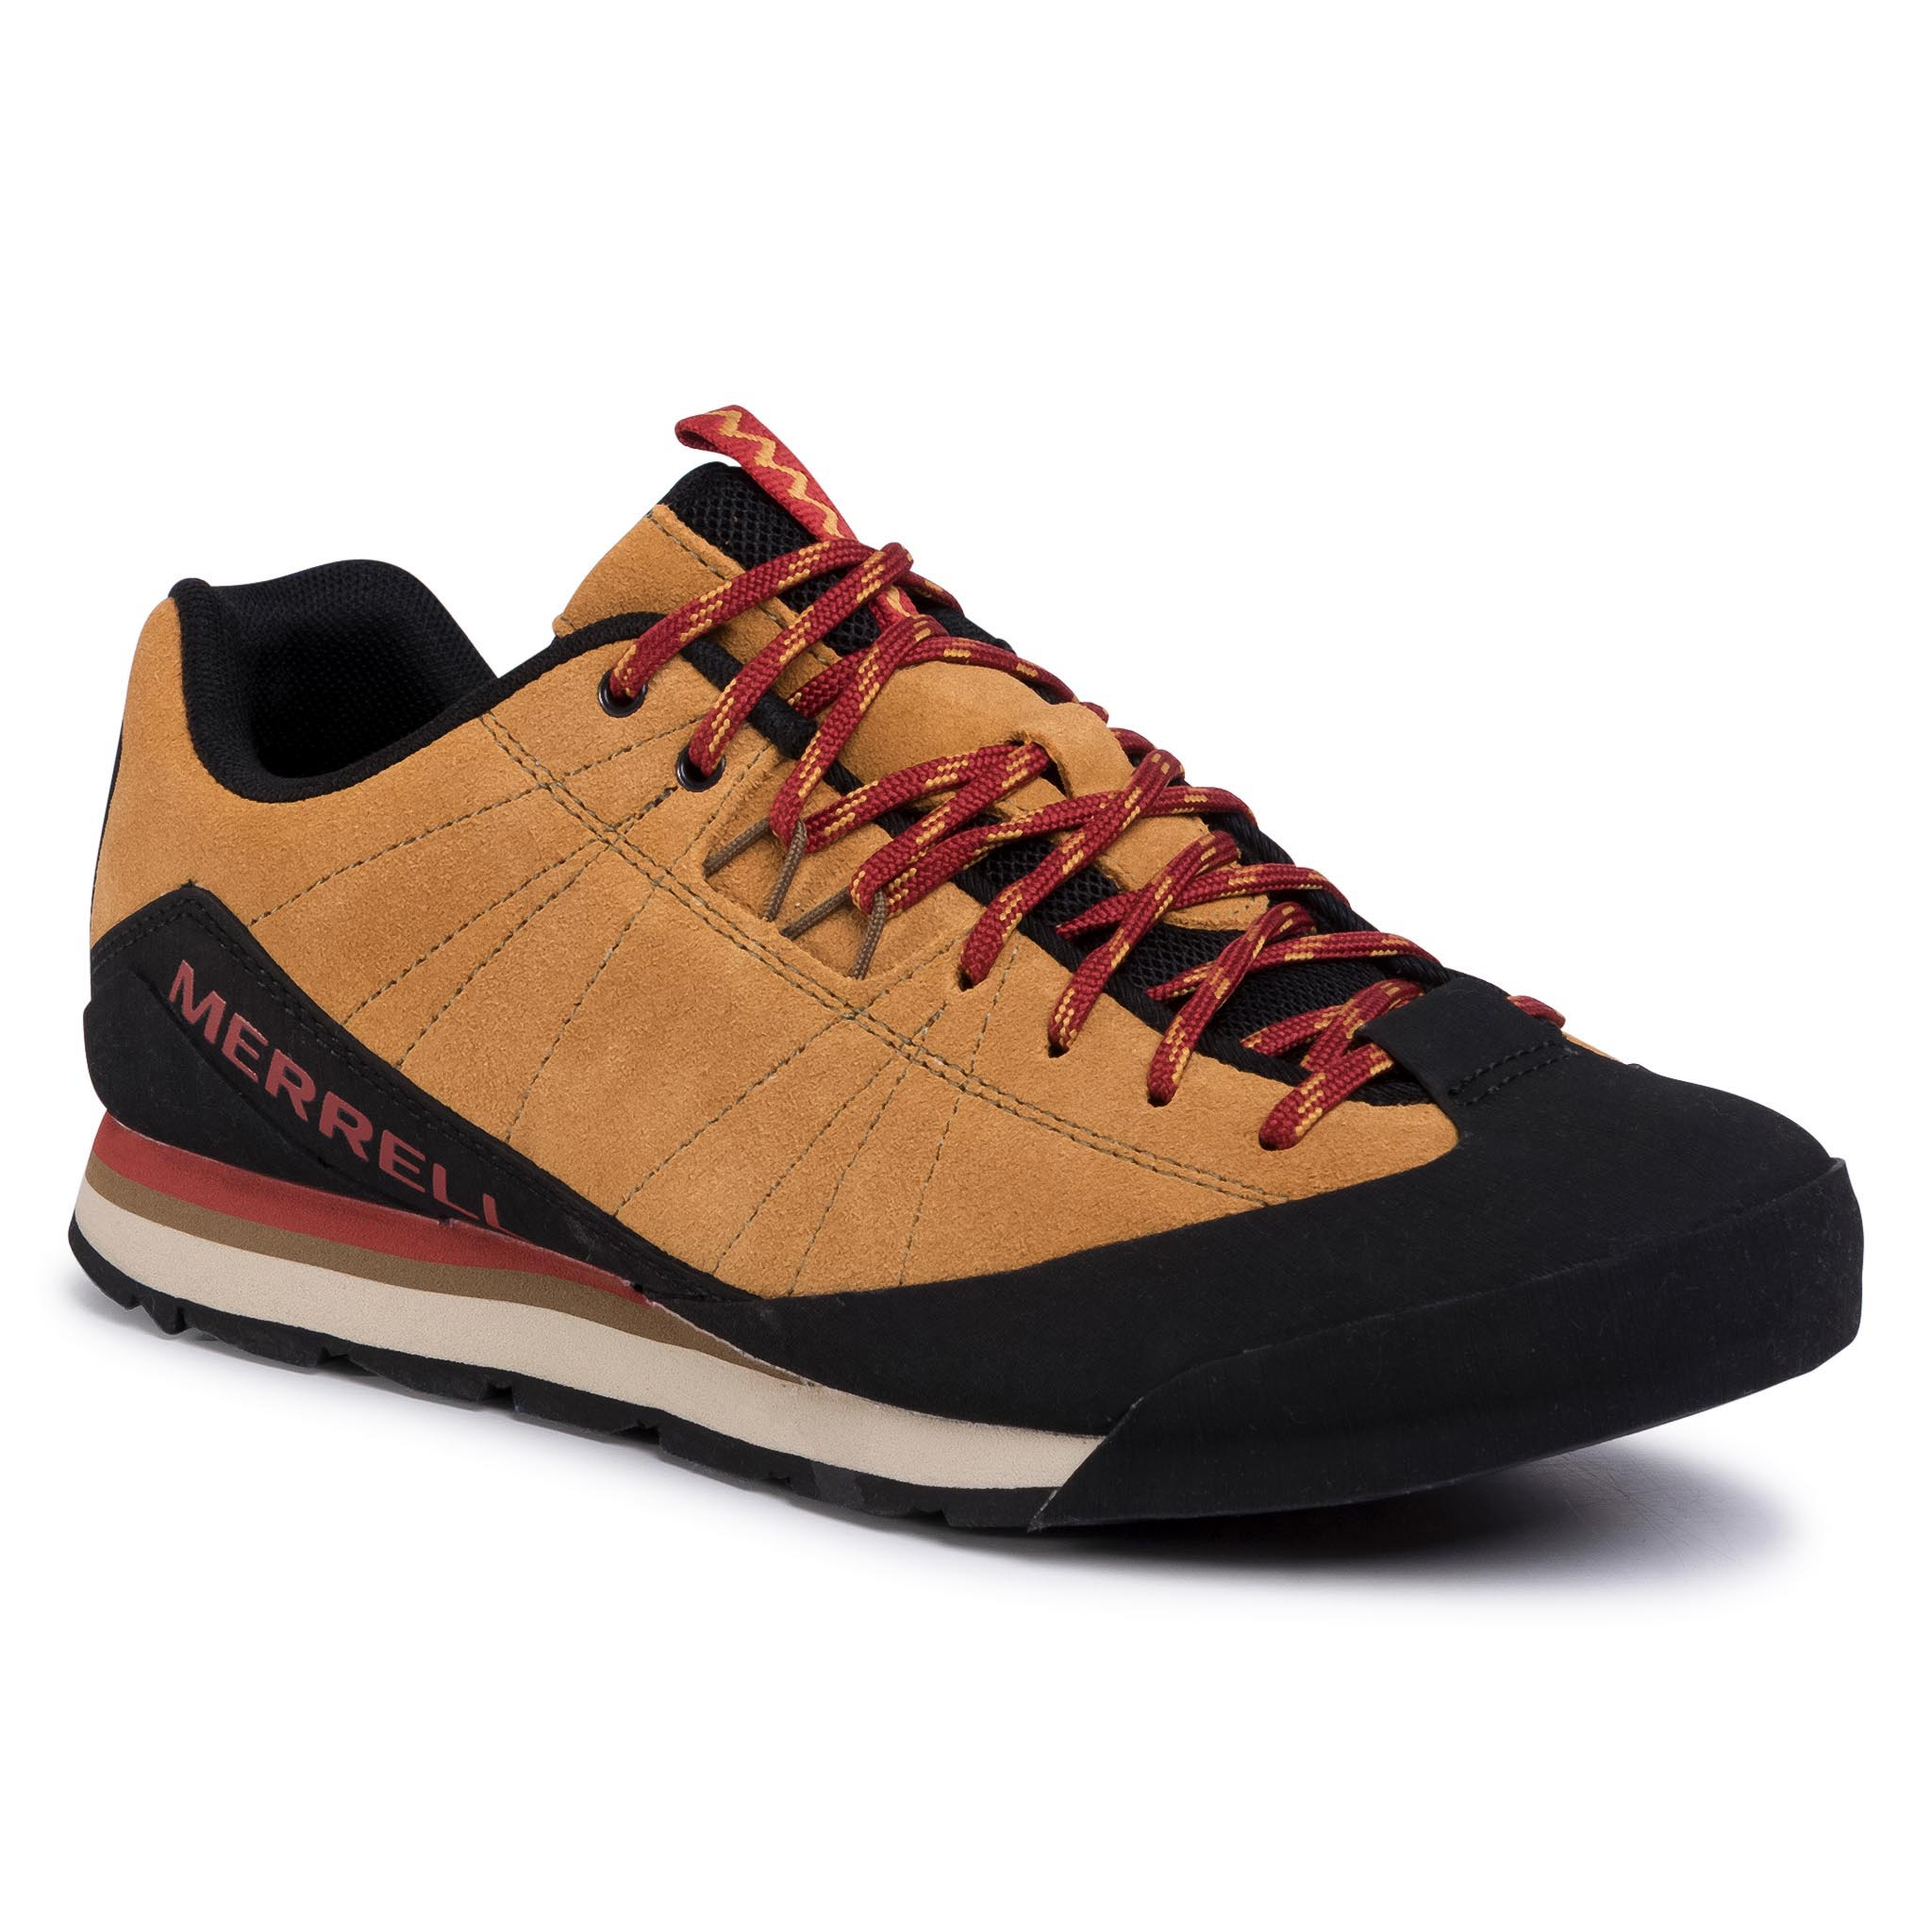 Trekkings Merrell - Catalyst Suede J000097 Gold imagine epantofi.ro 2021